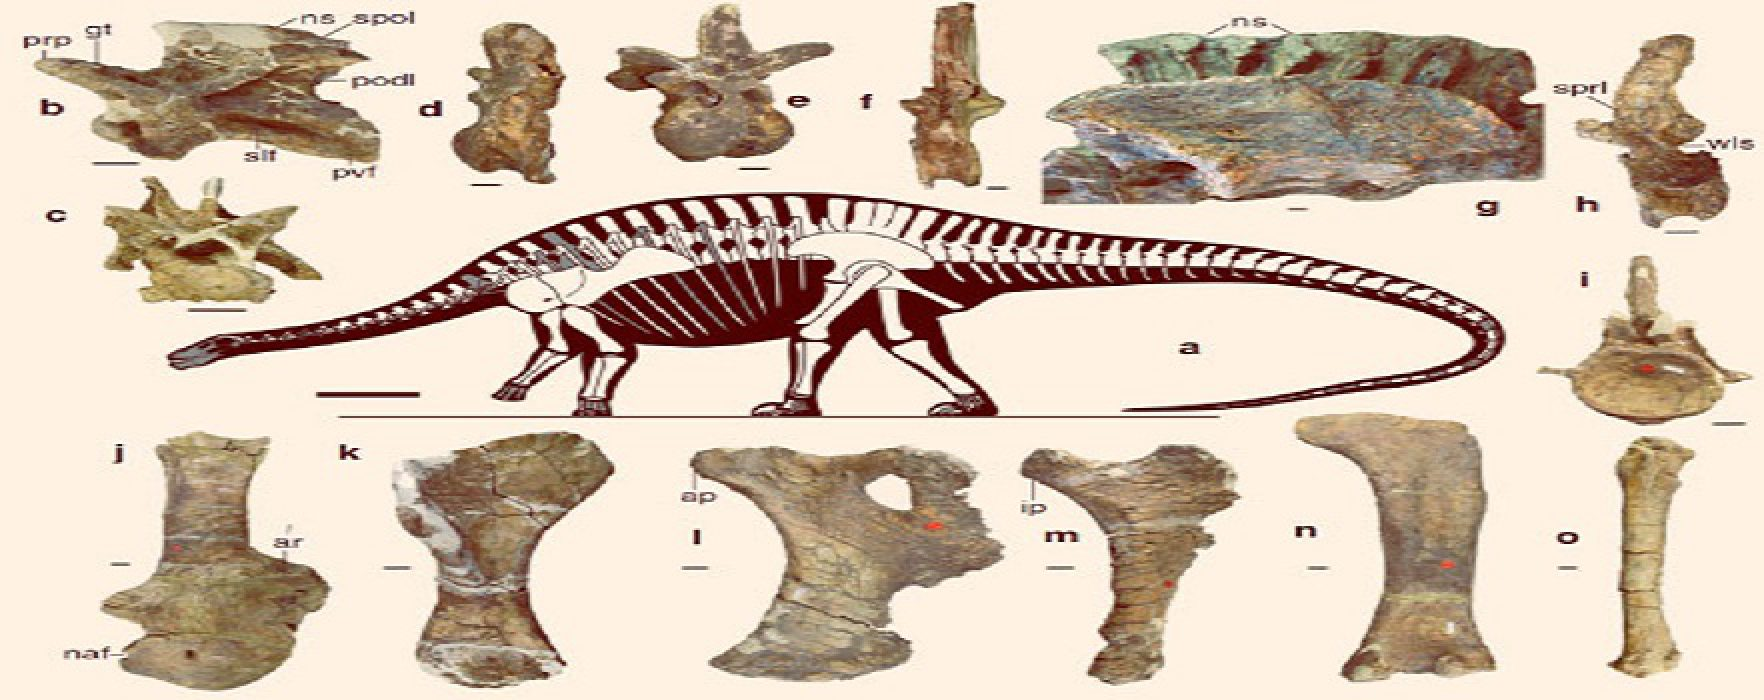 New Dino Find Pushes Back Date of Sauropod Origins